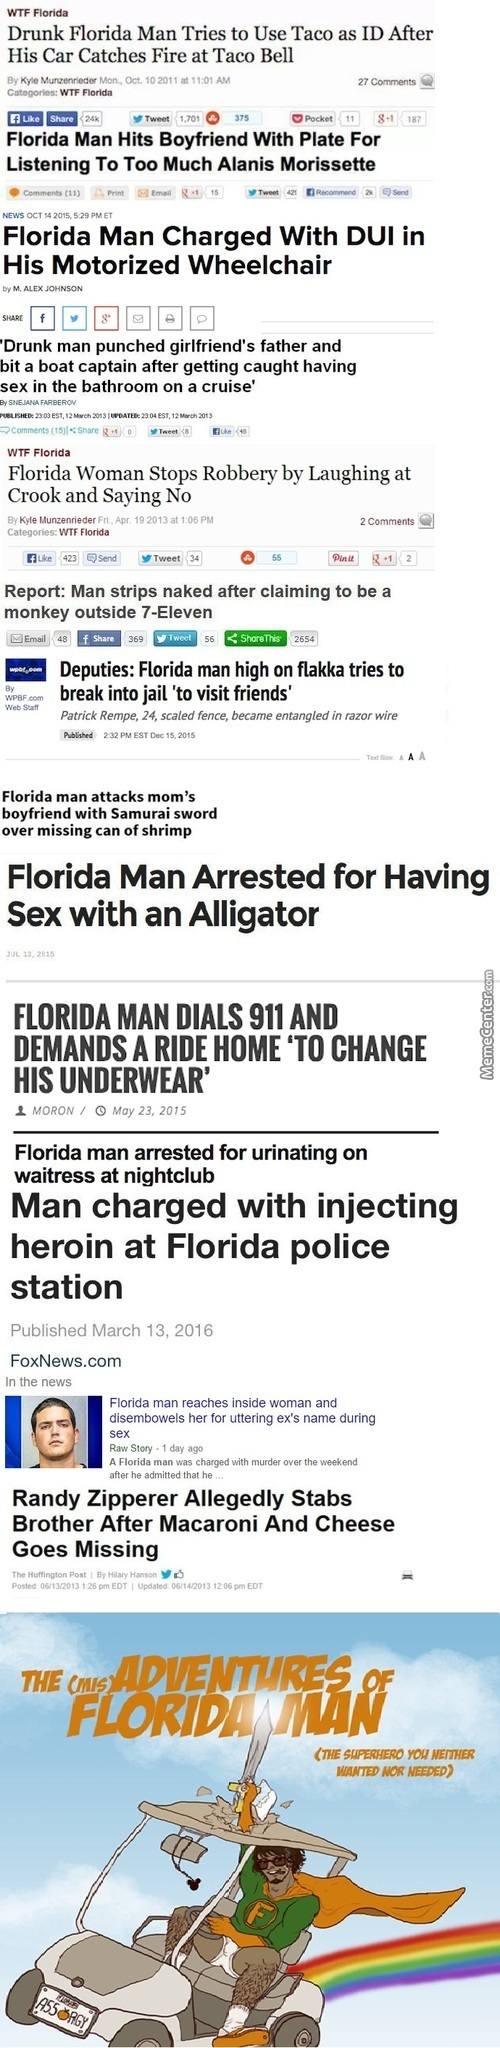 The Adventure Of Florida Man